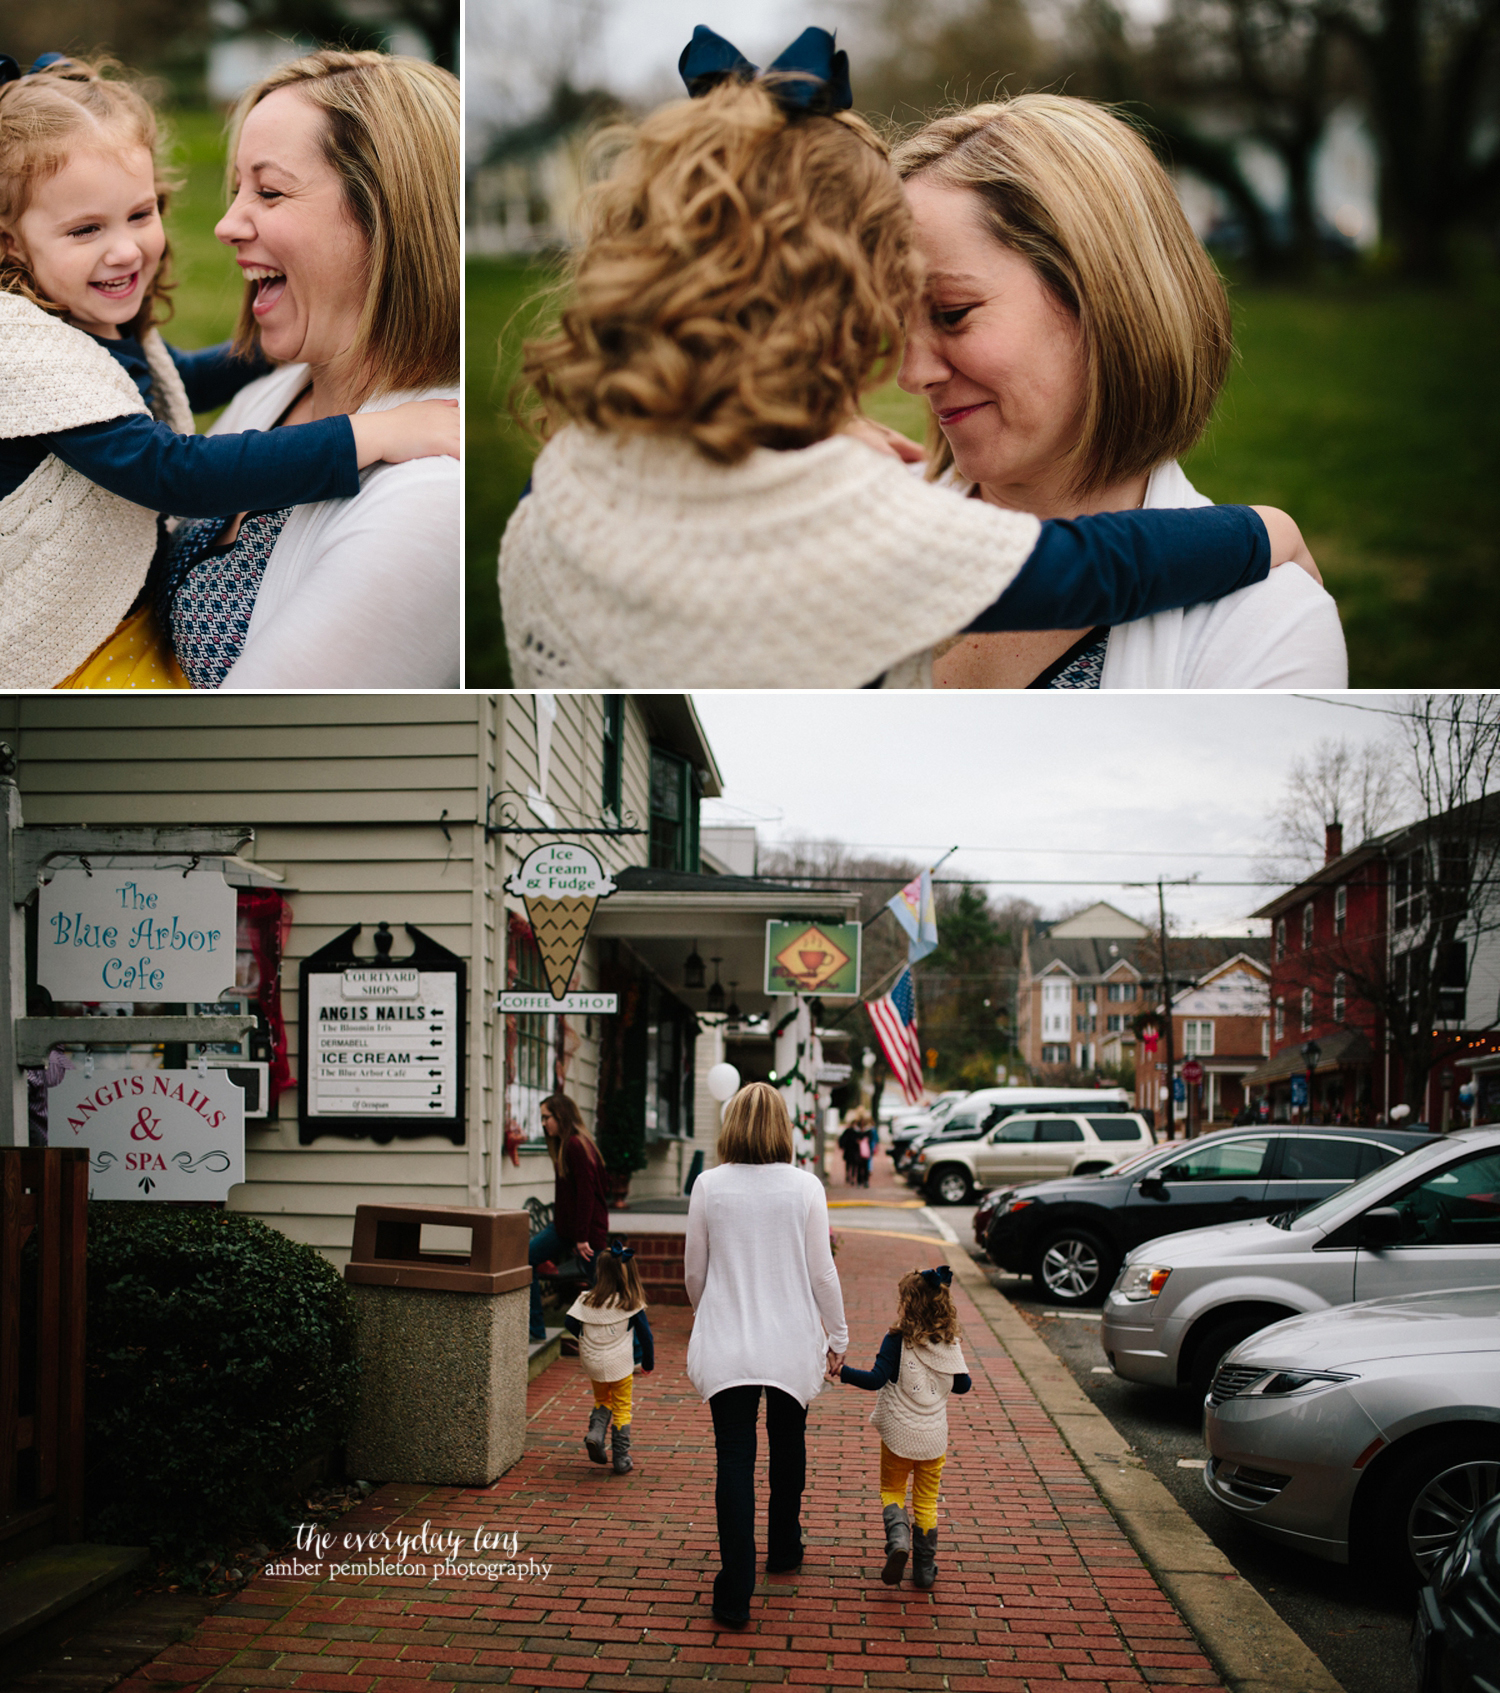 small-town-family-storytelling-photo.jpg